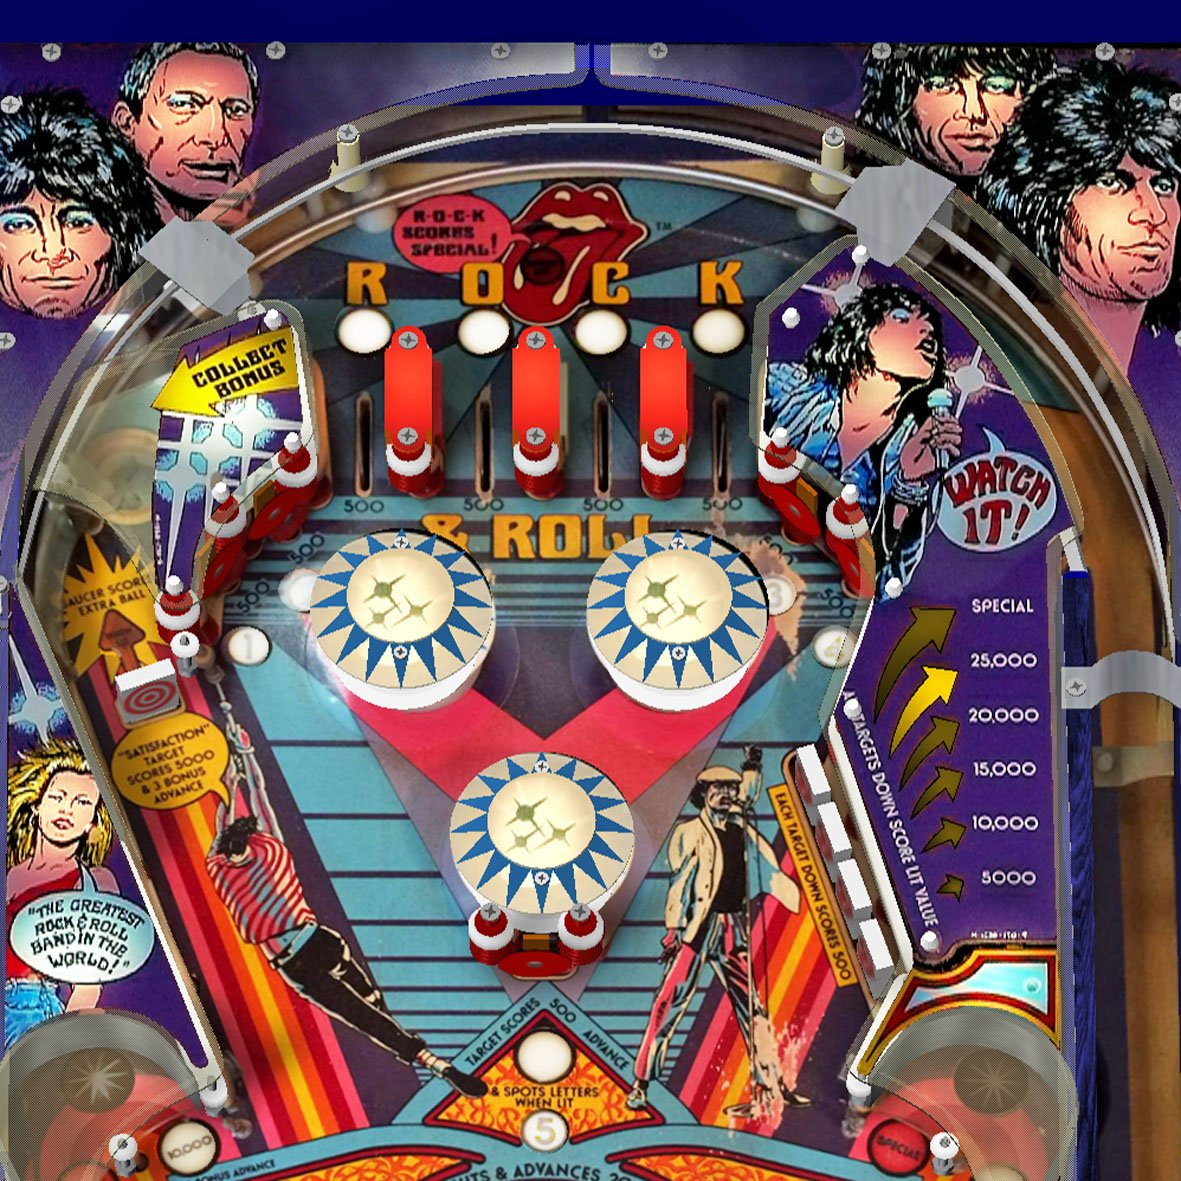 1980 Rolling Stones Pinball Machine 'Coming Soon' by Bally